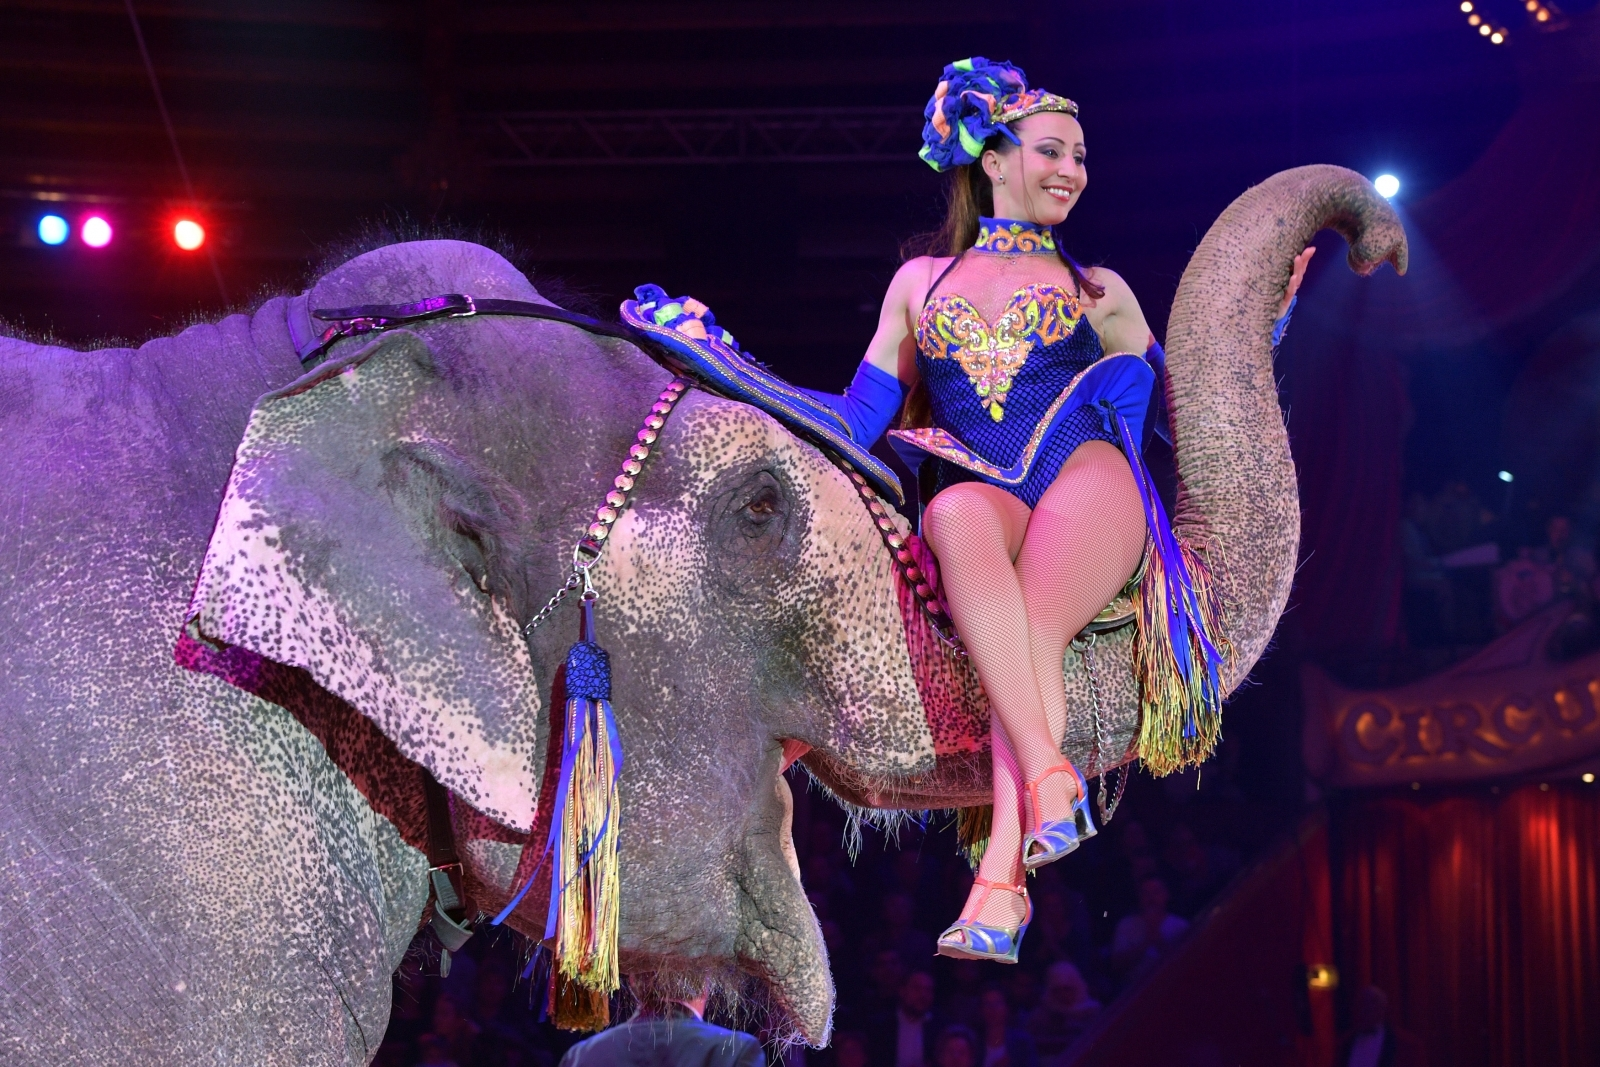 Jana Lacey-Krone performs with an elephant during Circus Krone celebrates premiere of 'In Memoriam' at Circus Krone on December 25, 2017 in Munich, Germany